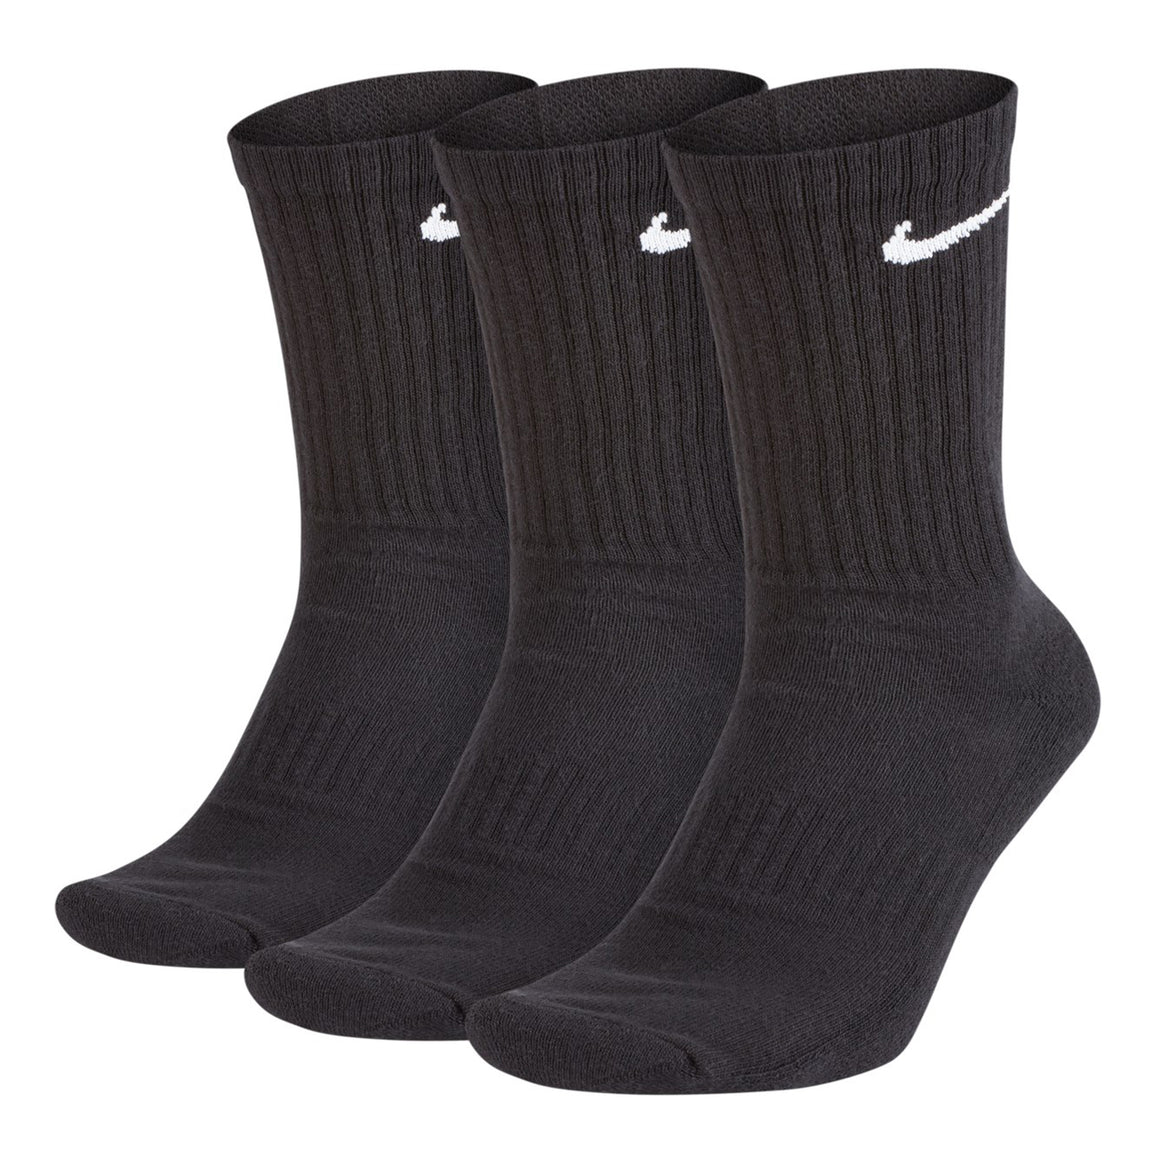 3 Pair Pack Everyday Cushion Crew Training Socks for Men in Black